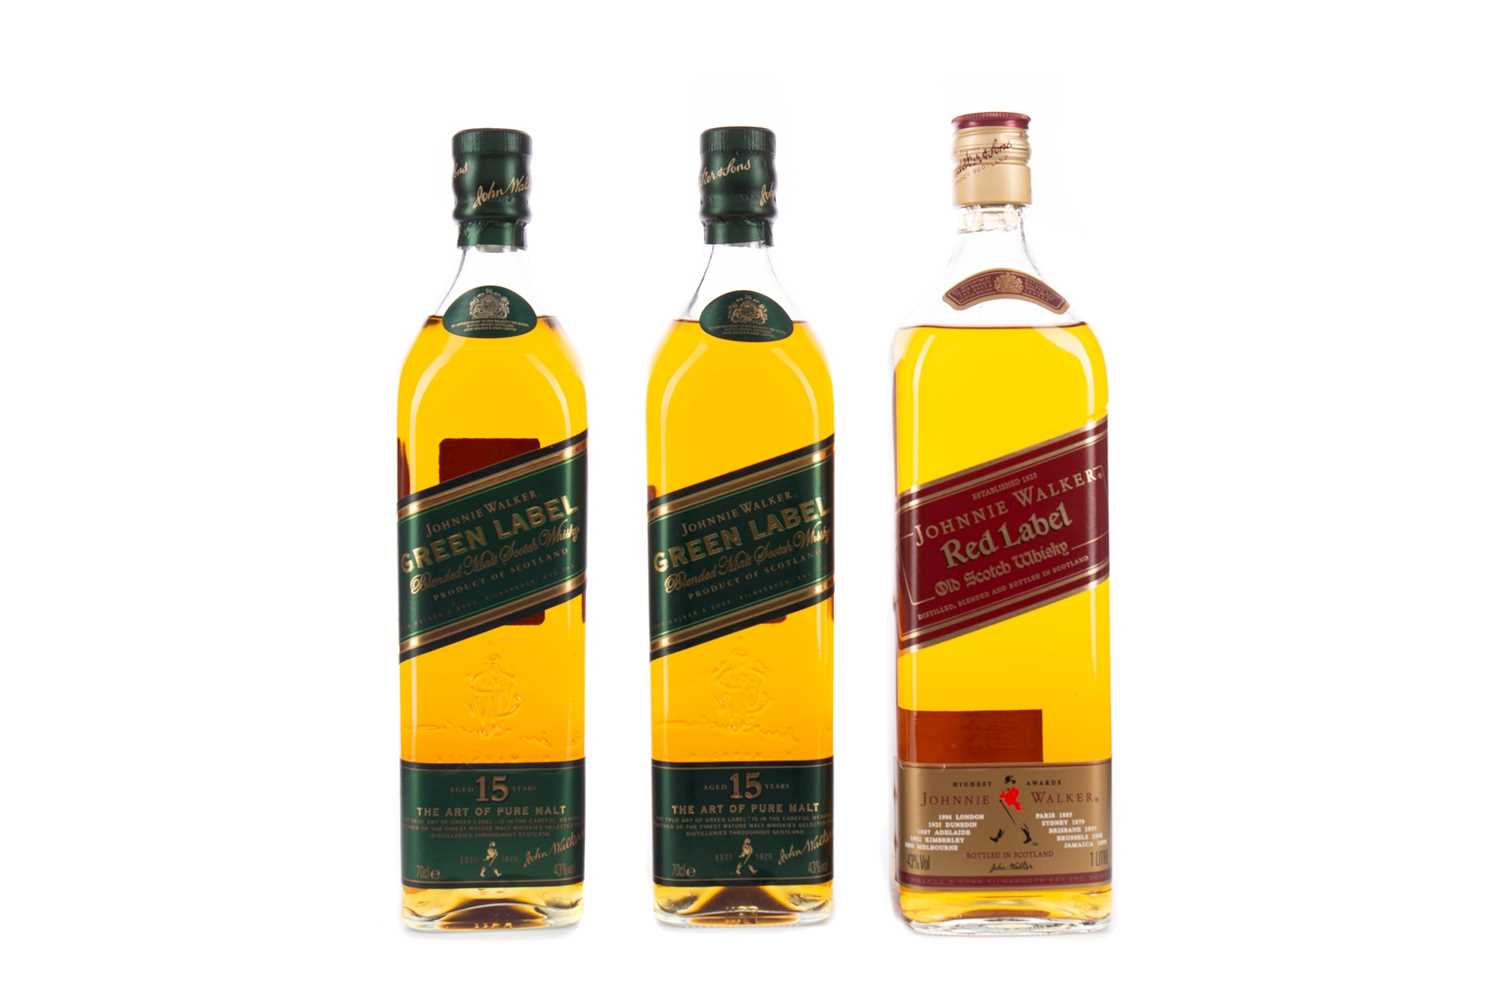 Lot 49 - TWO BOTTLES OF JOHNNIE WALKER GREEN LABEL AGED 15 YEARS, AND RED LABEL